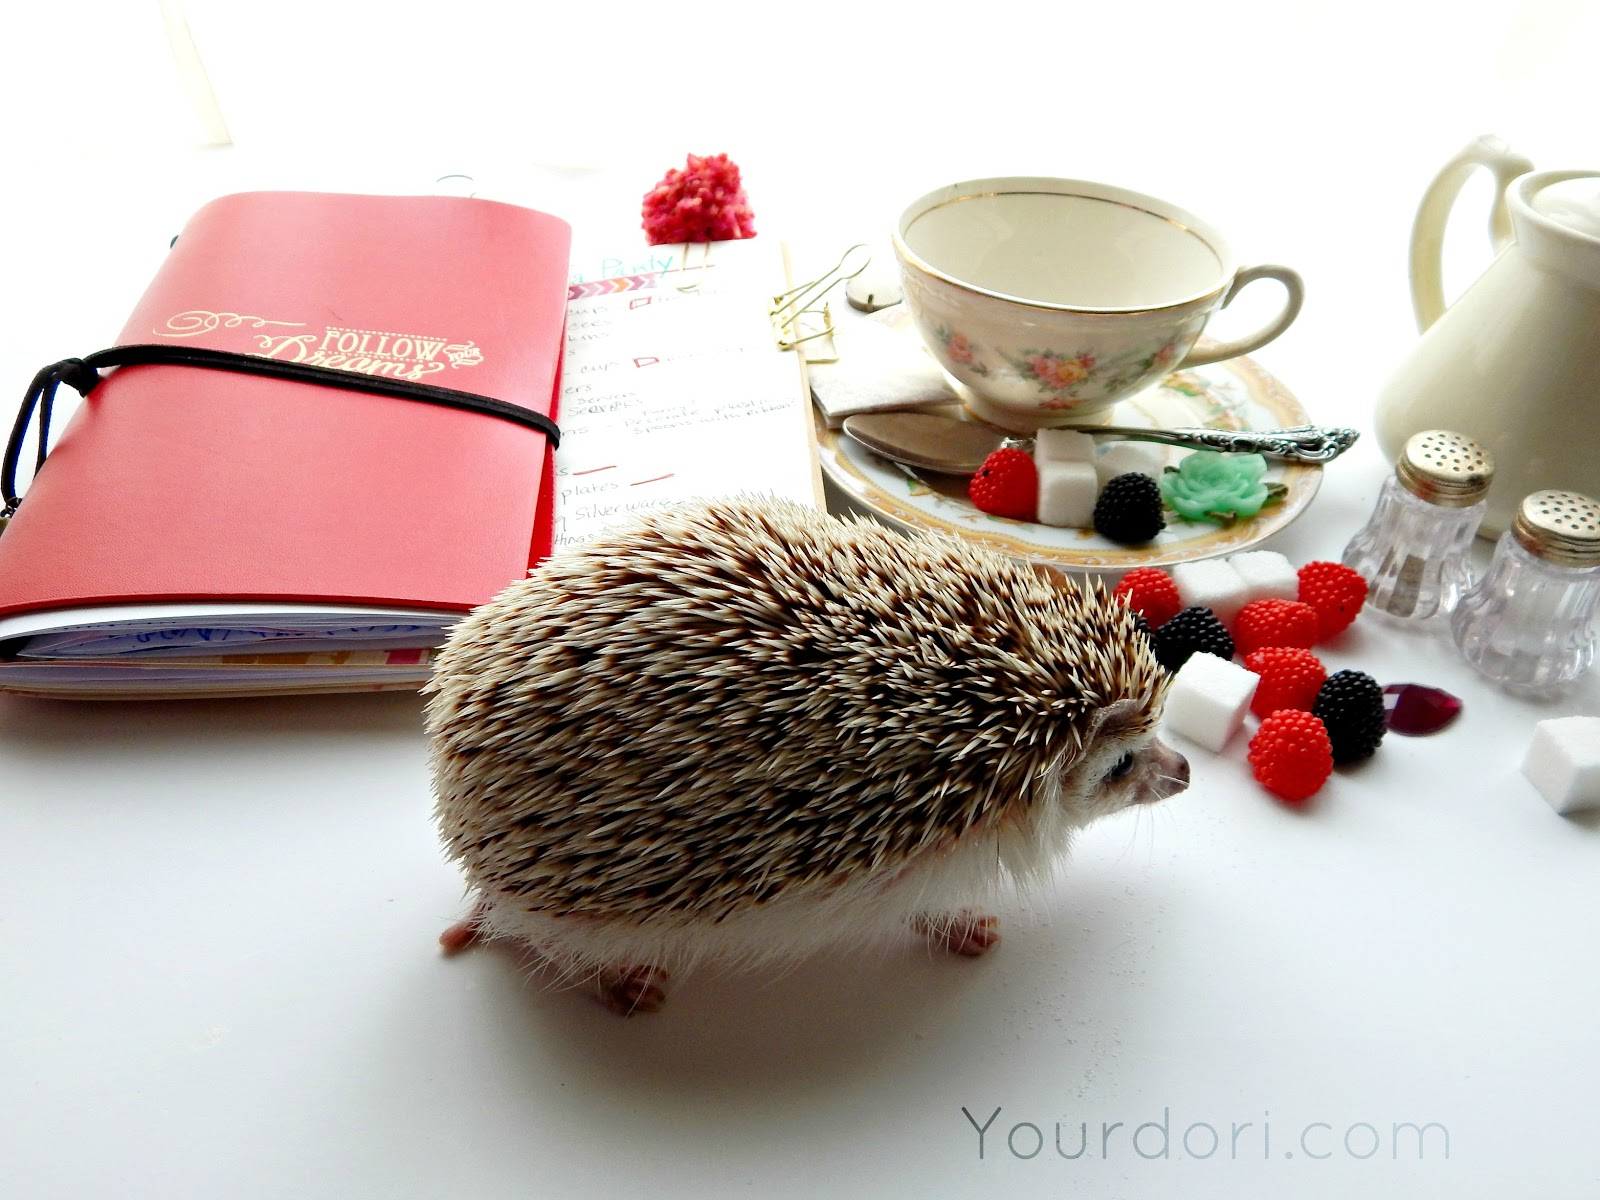 Cute Hedgehog, Planners, Lists, List Making, Gold Bulldog Clips, Midori, Travelers Notebook